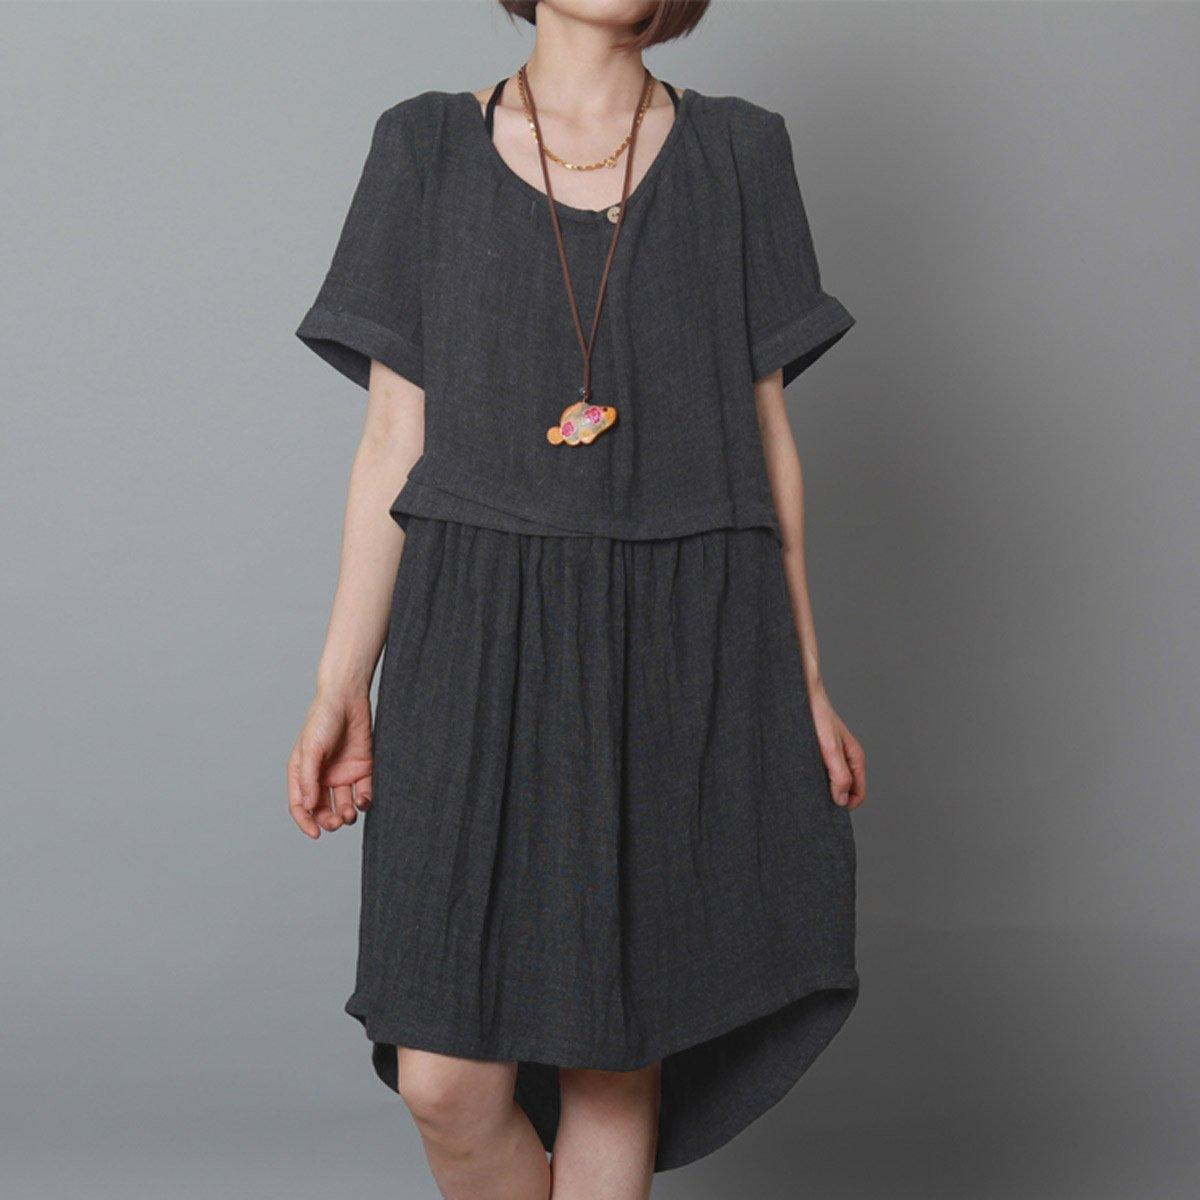 dark grey causal summer dress oversize shift dress holiday garden dress